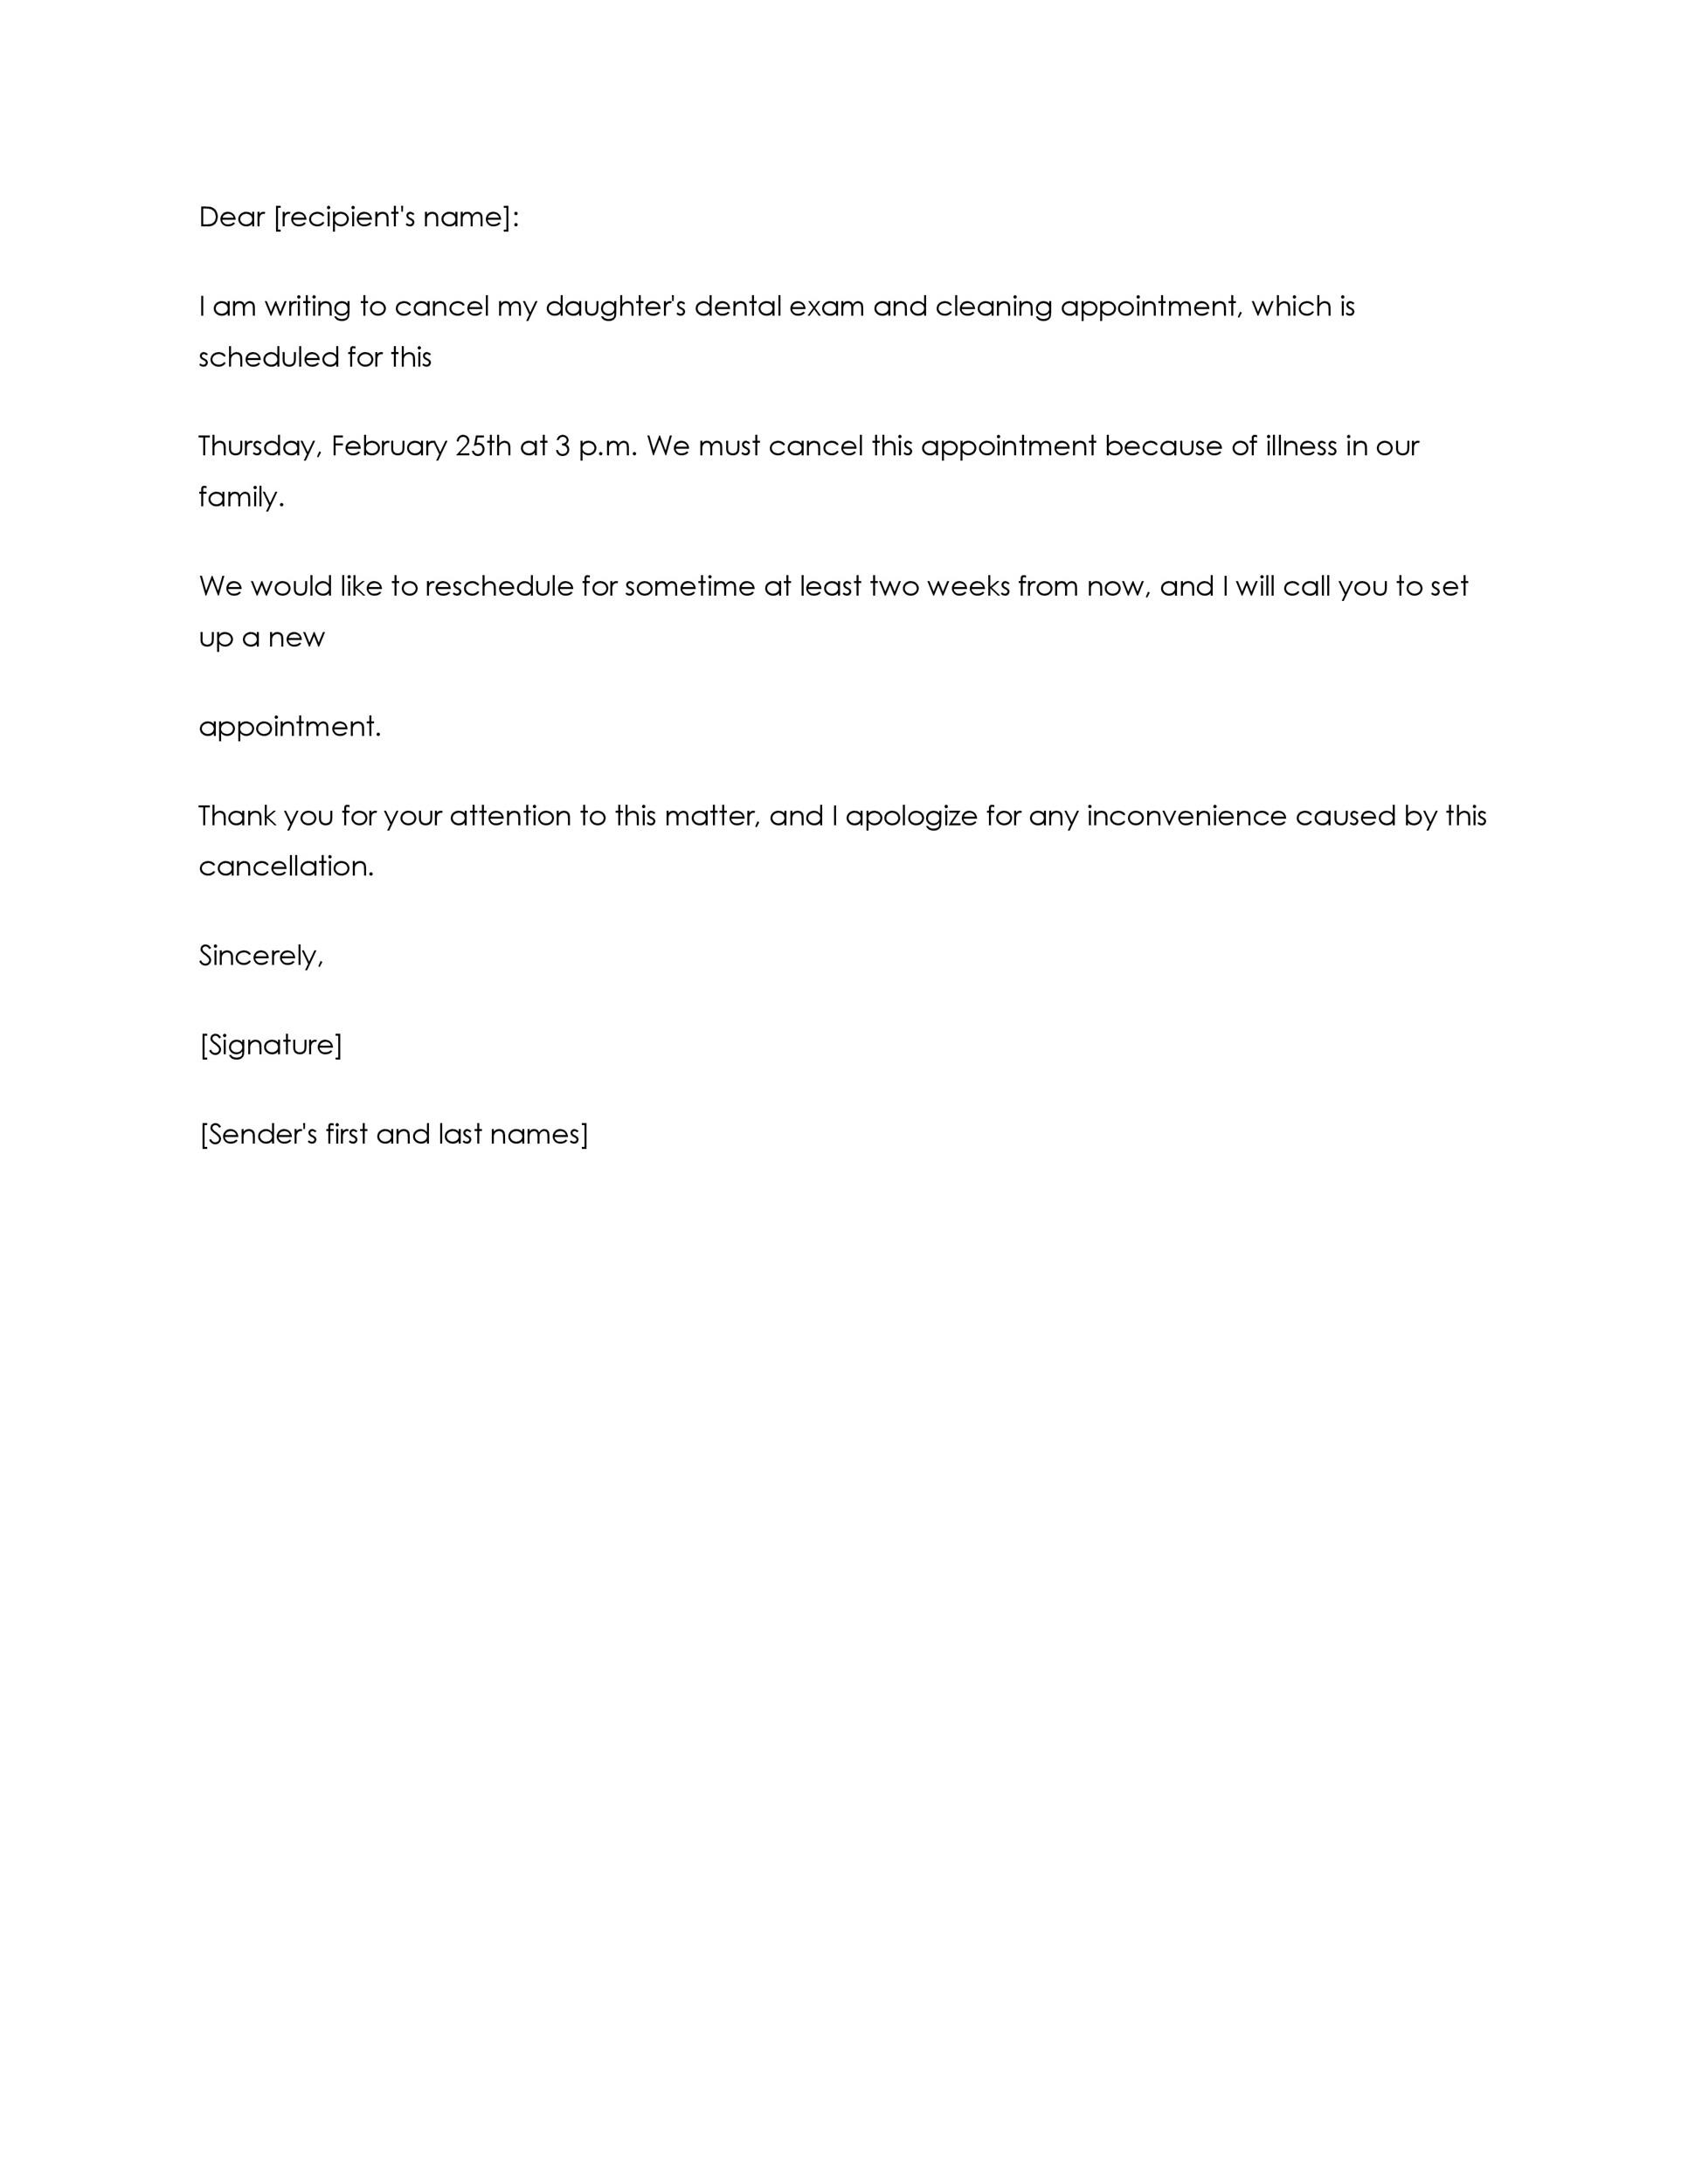 Free cancellation letter 03